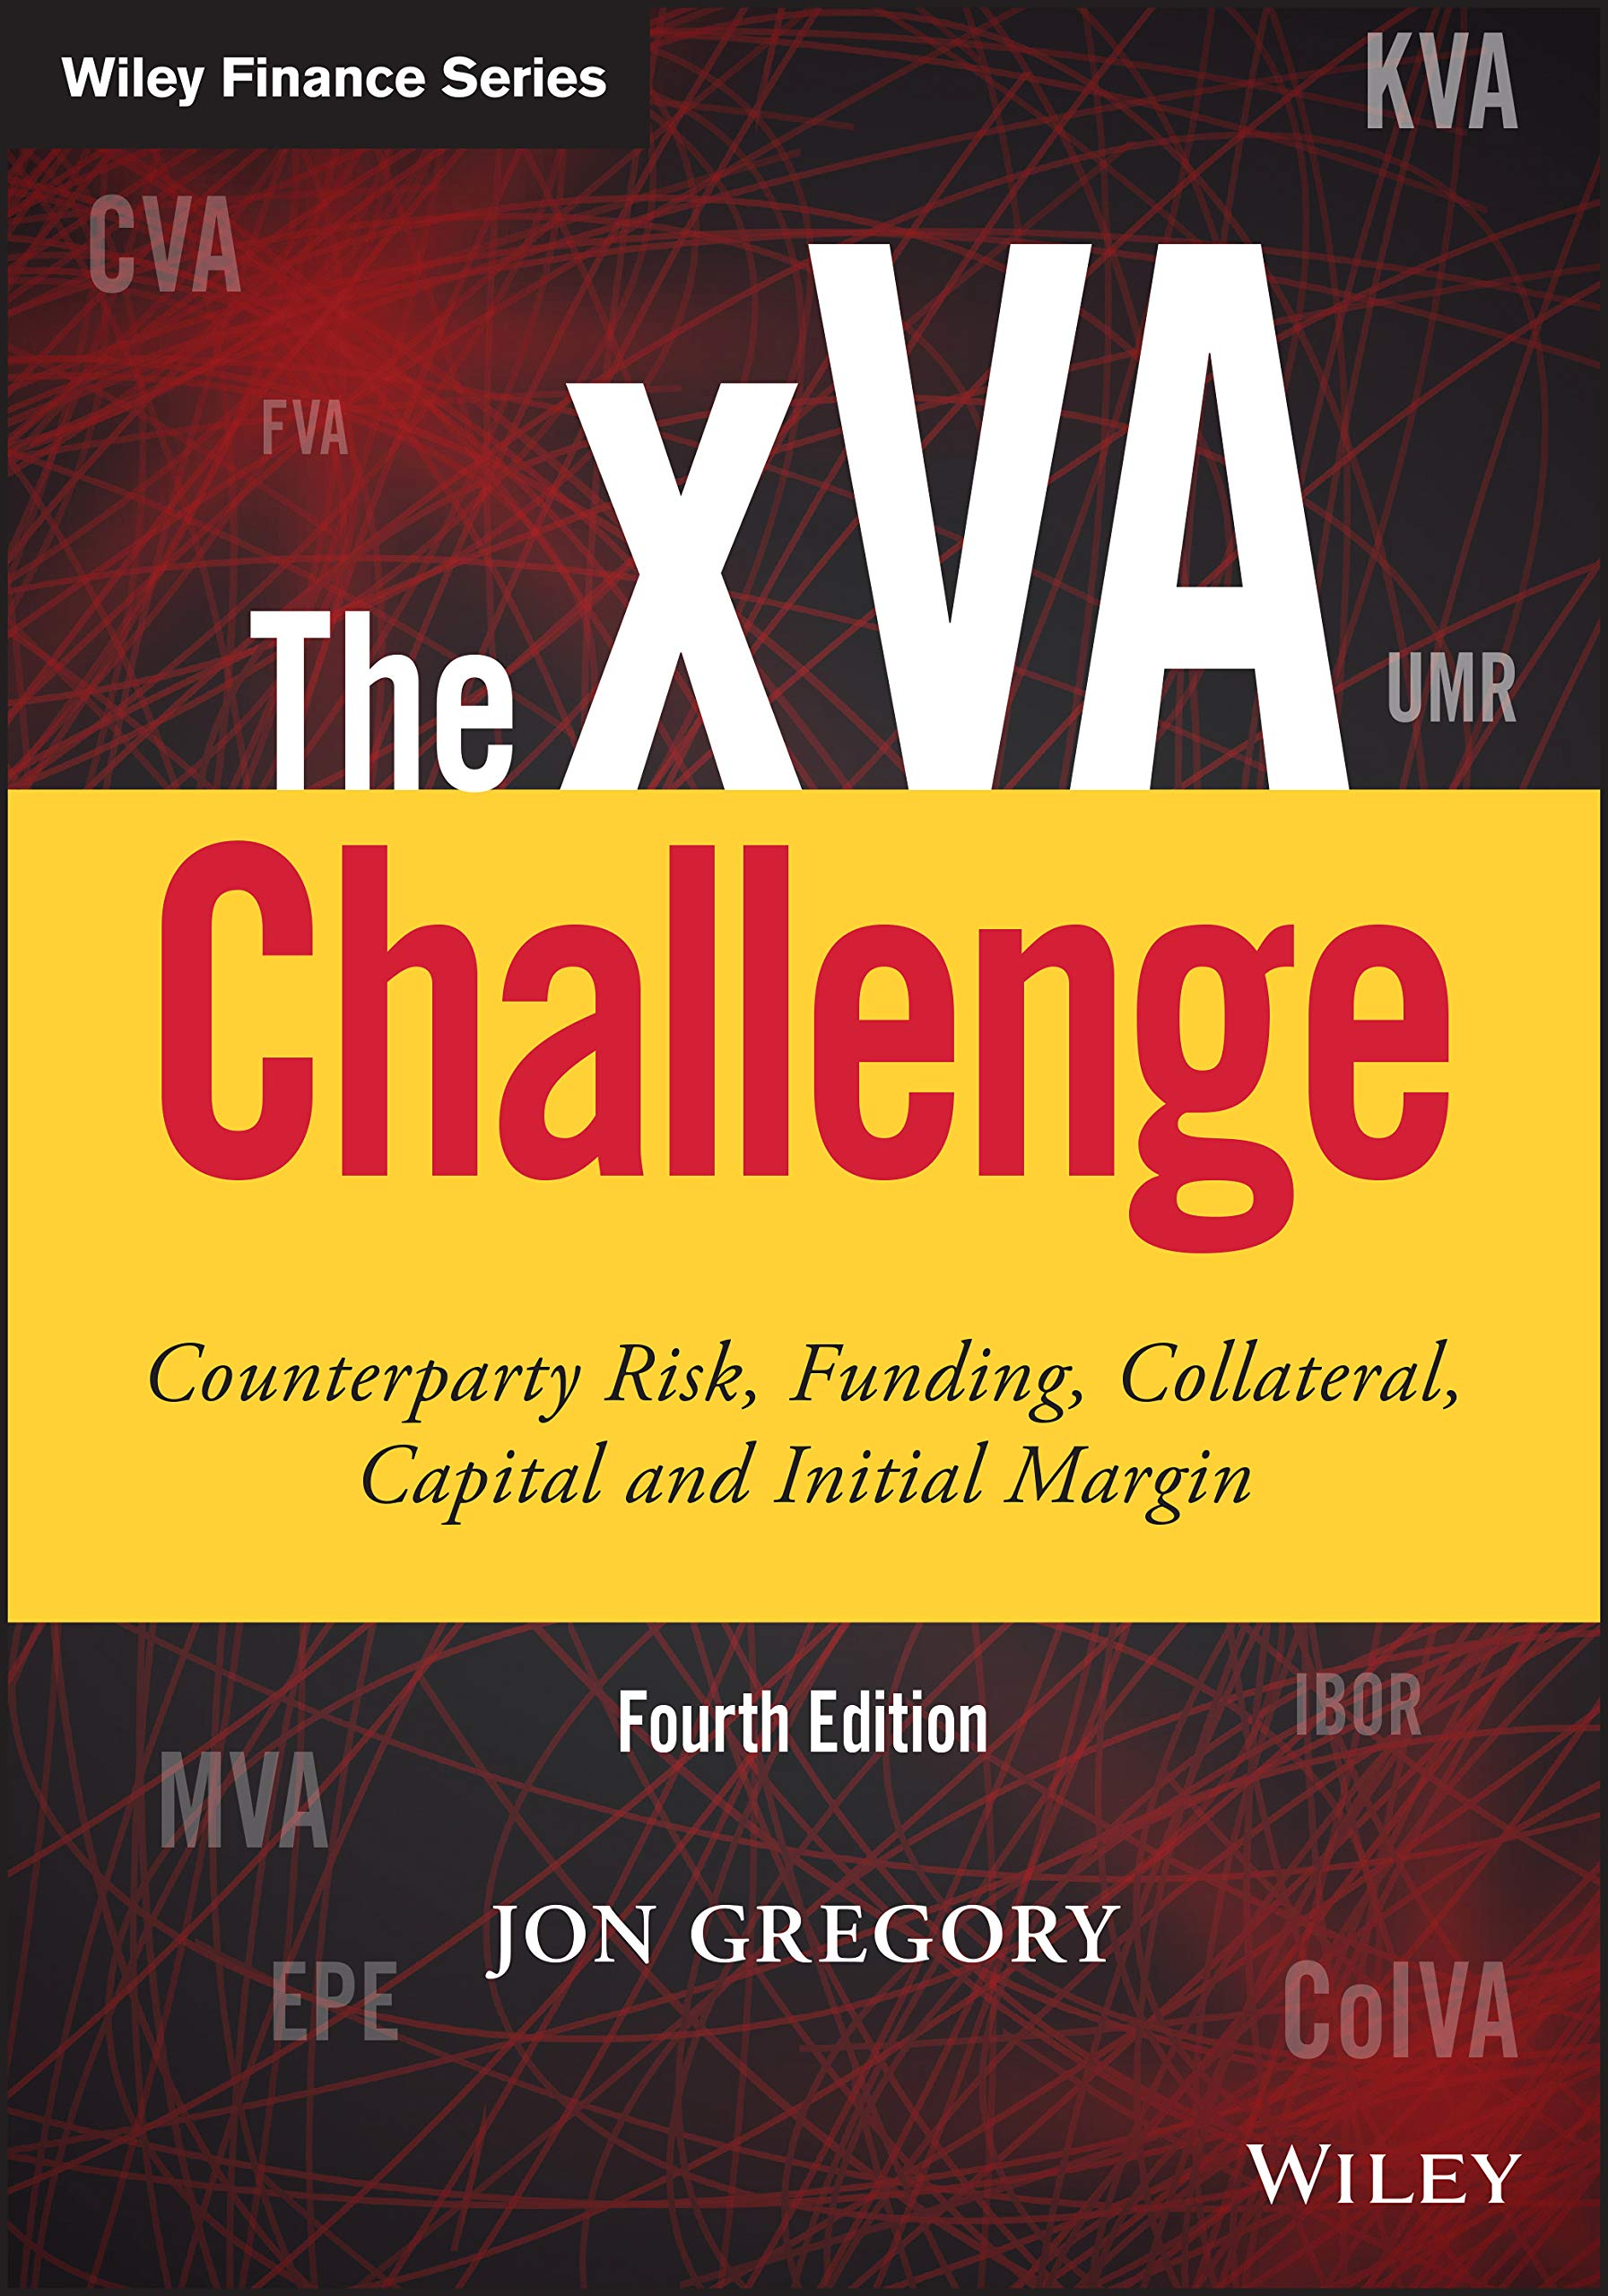 Download The XVA Challenge: Counterparty Risk, Funding, Collateral, Capital And Initial Margin (Wiley Finance Editions) 